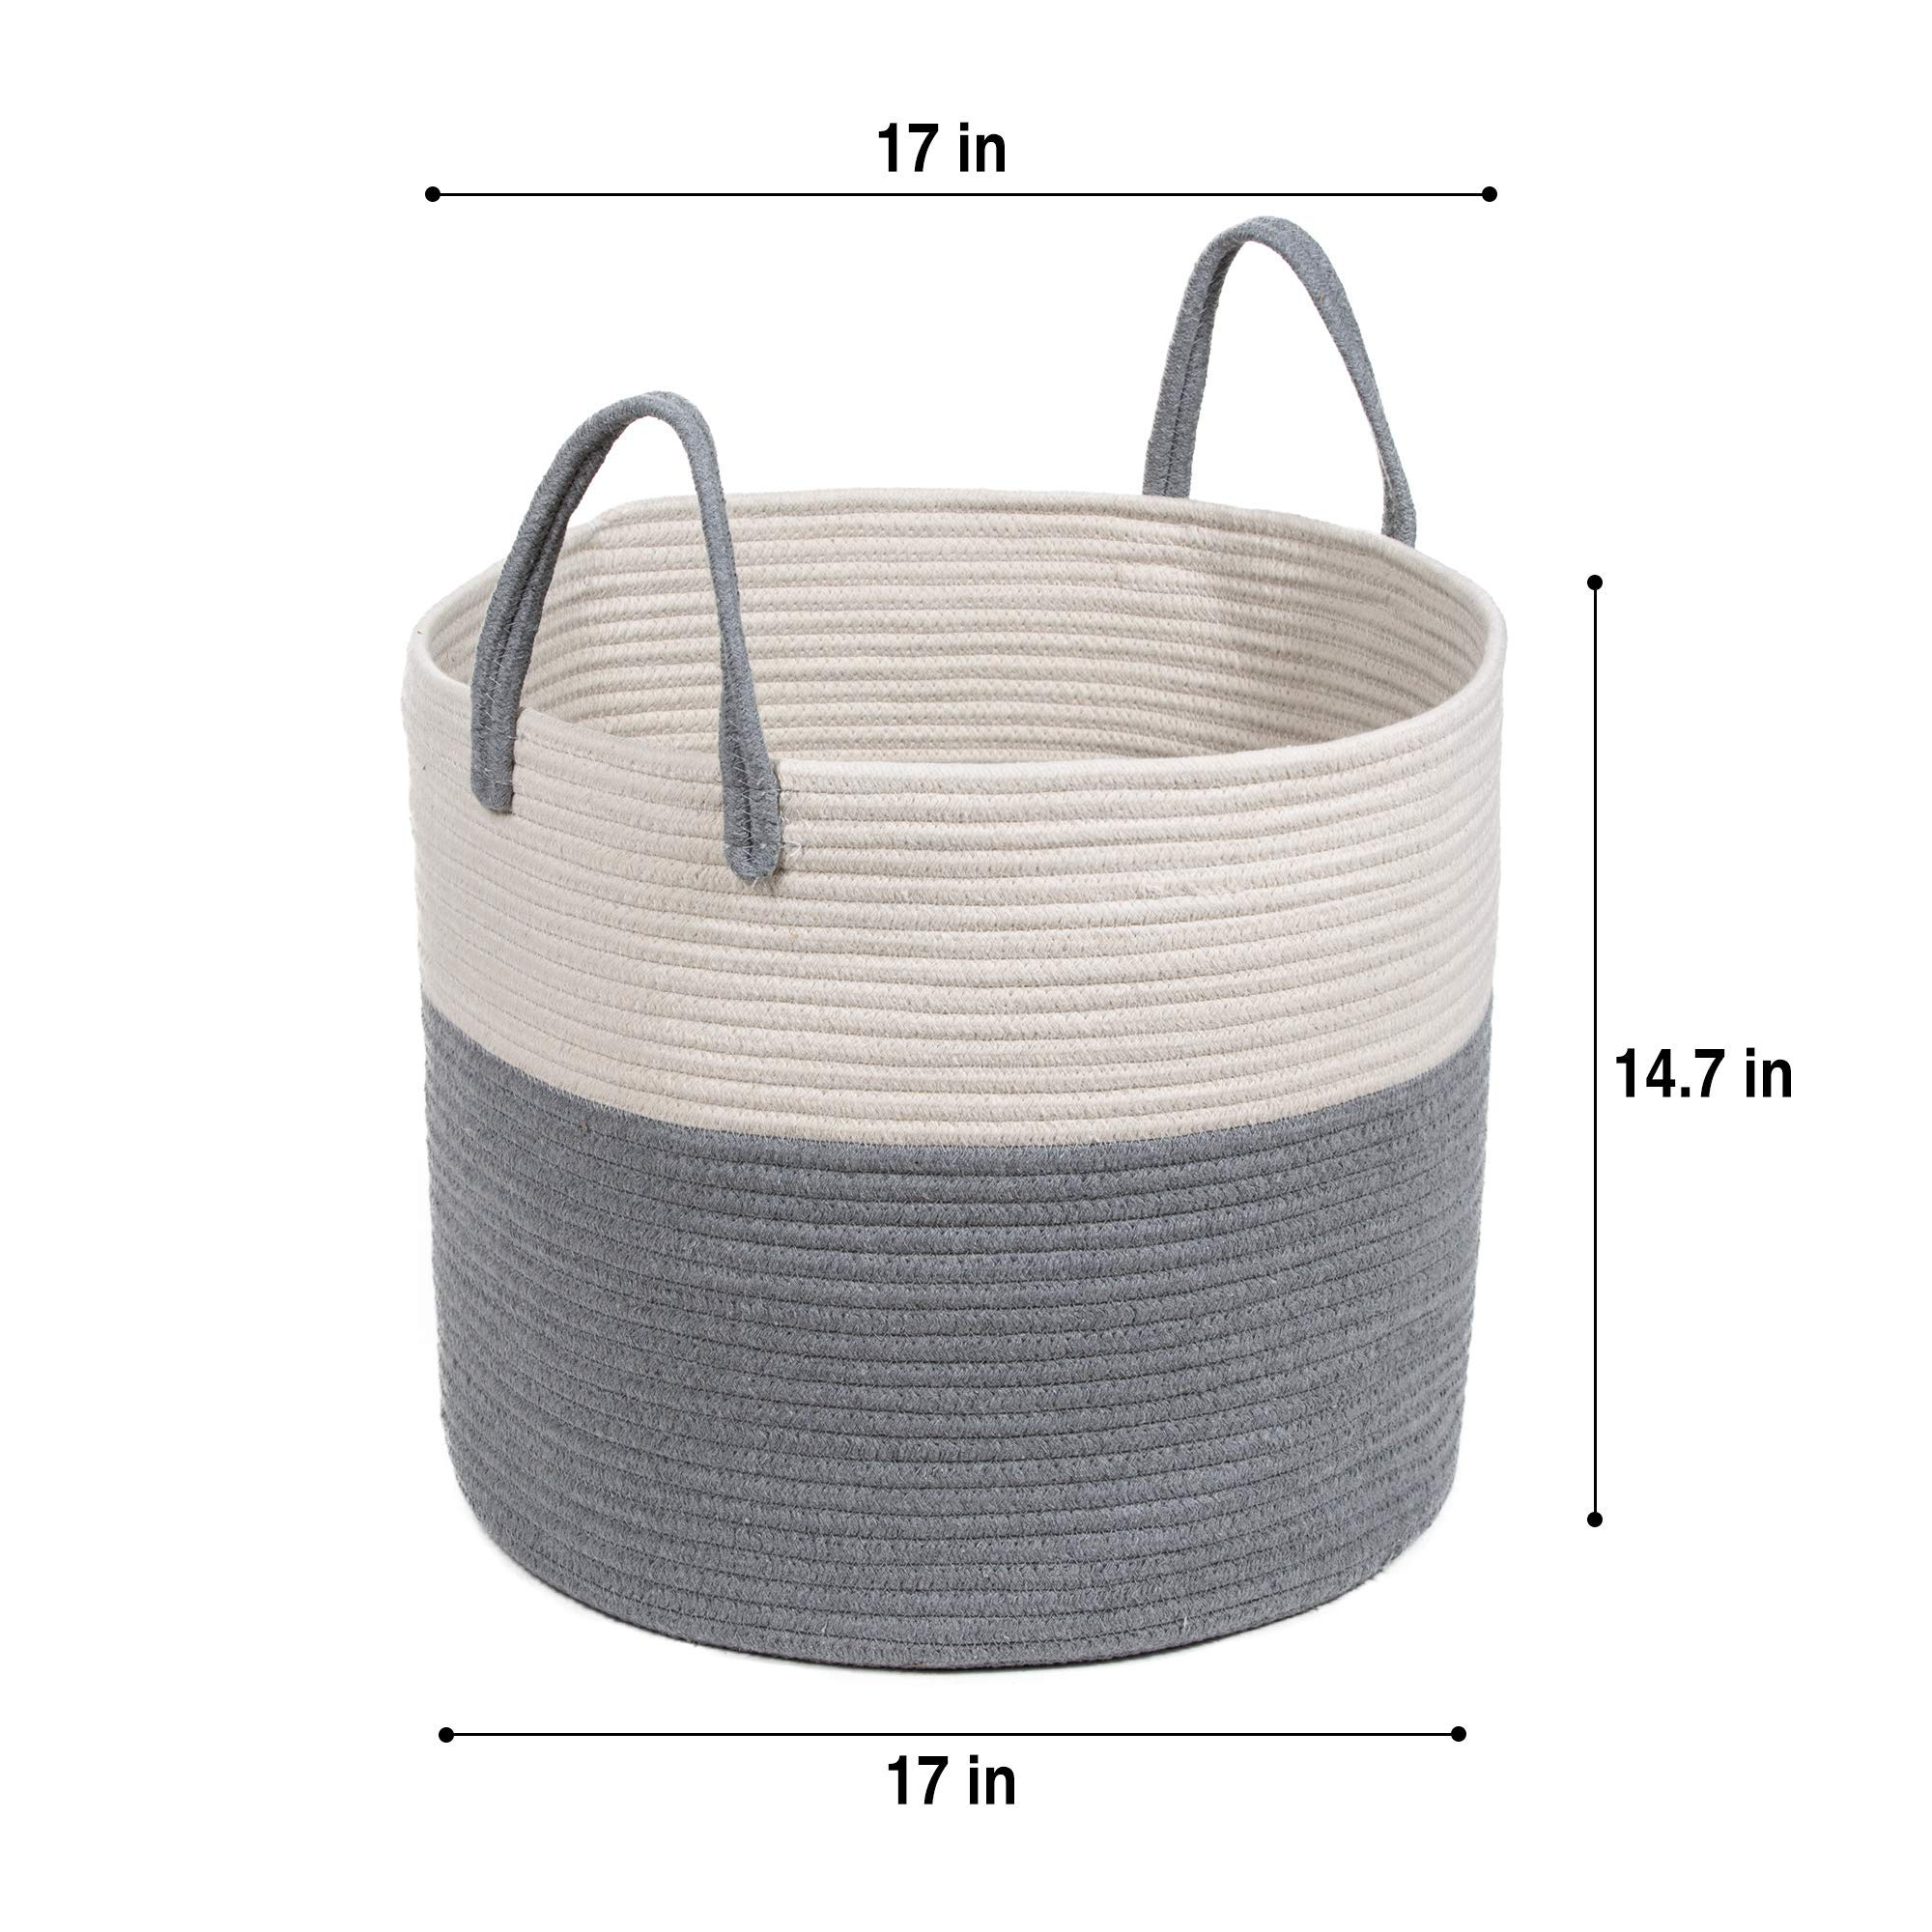 Extra Large Cotton Rope Basket 17 x 14.7 with Handles, for Baby Laundry Basket Woven Blanket Basket Nursery Bin by YOONLIVING (Image #2)